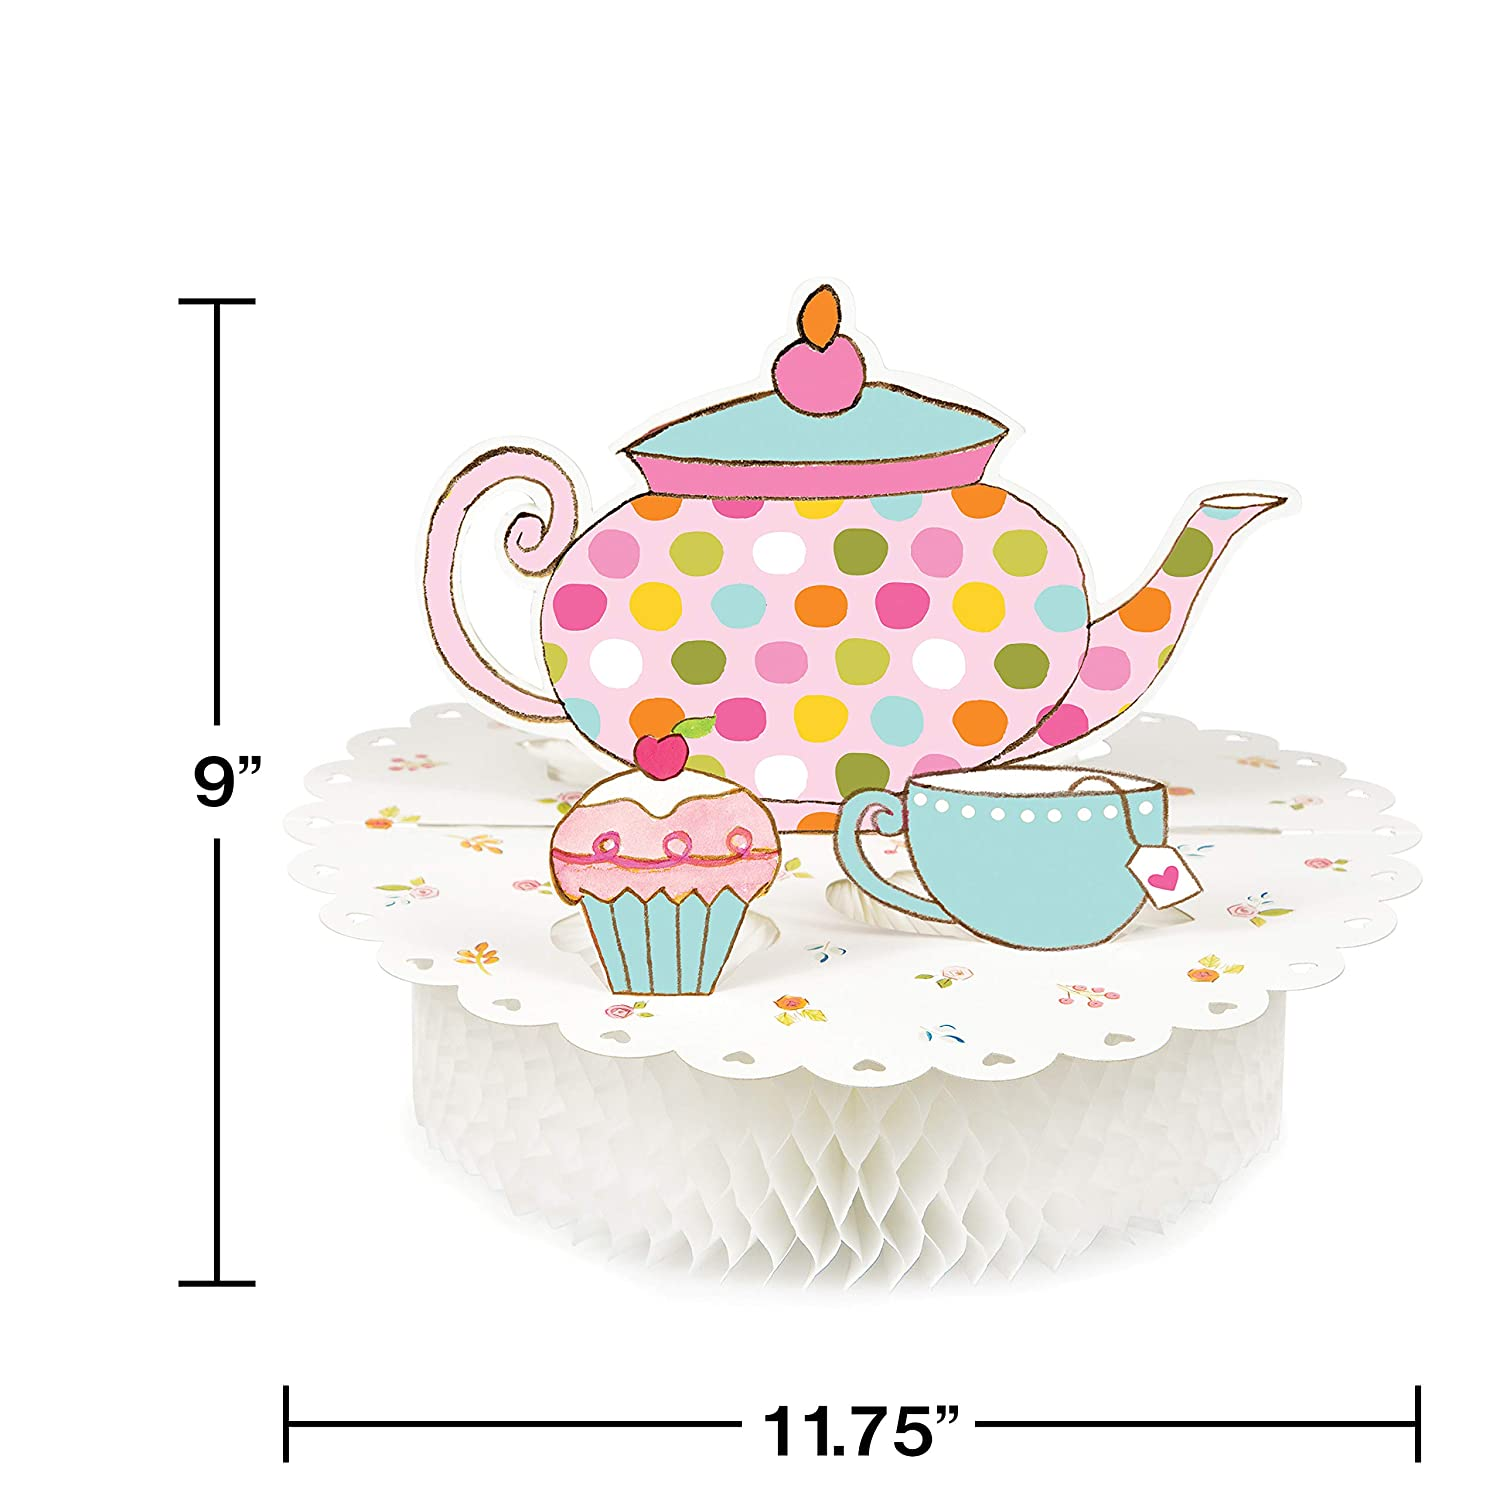 TeaTime 2 Pack Plus Party Planning Checklist by Mikes Super Store Tea Party Alice in Wonderland Birthday Supplies Pop up Centerpiece